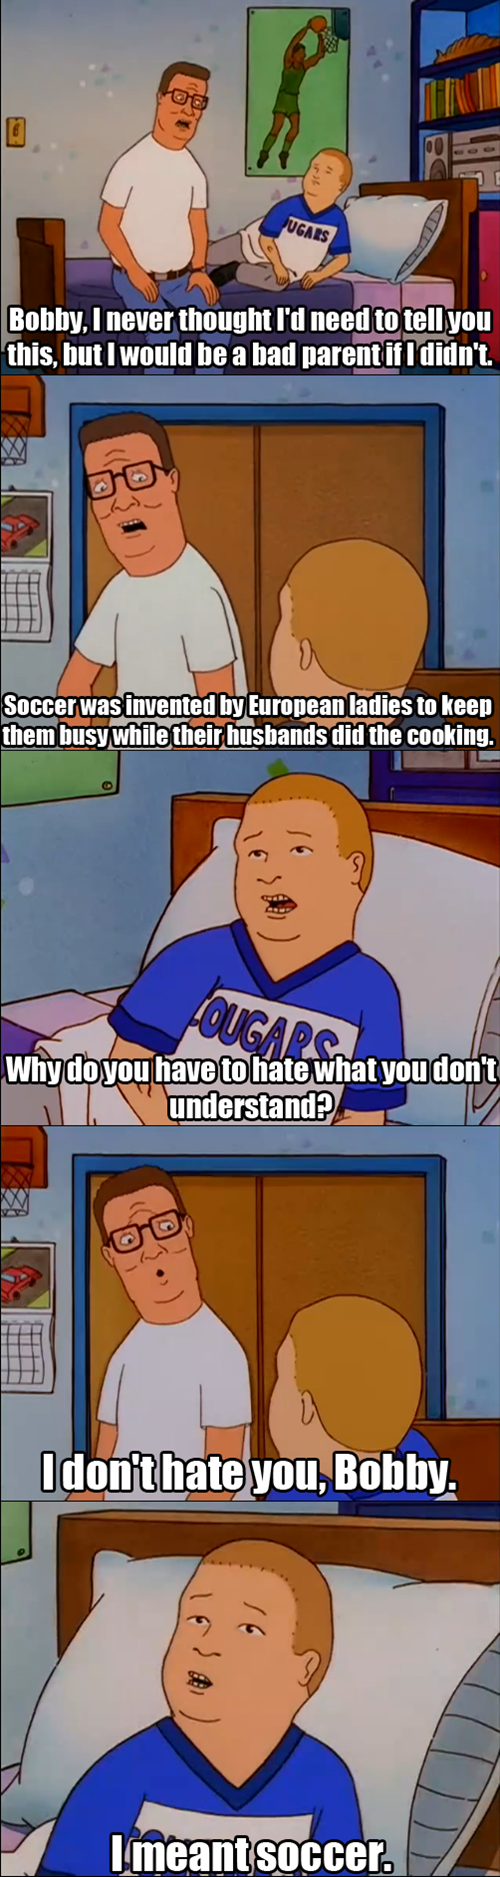 bobby hill King of the hill soccer - 8237960960